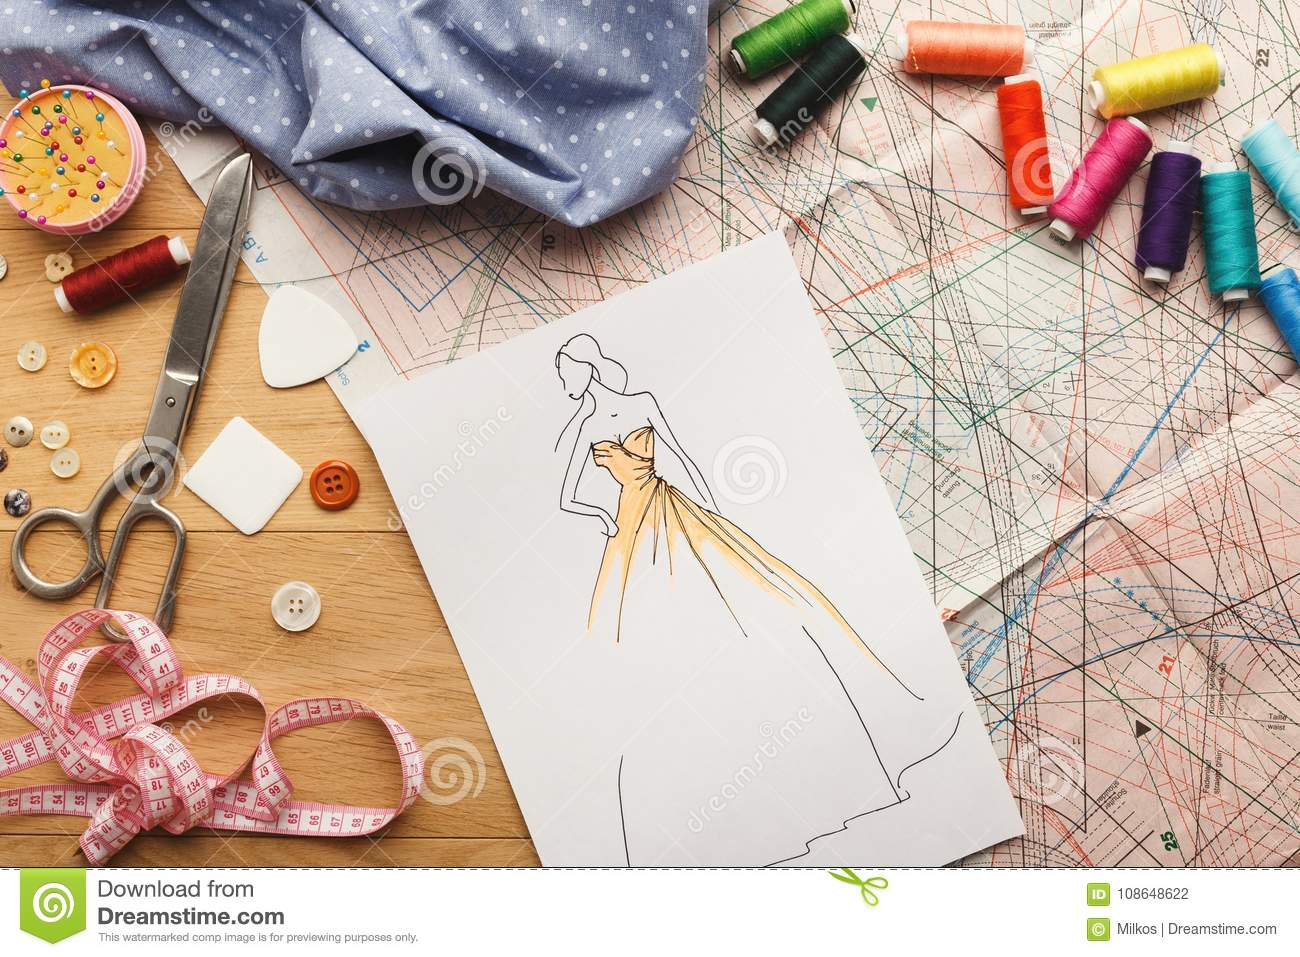 523dba855ae4b Hand Drawn Sketches For New Fashion Collection Stock Photo - Image ...